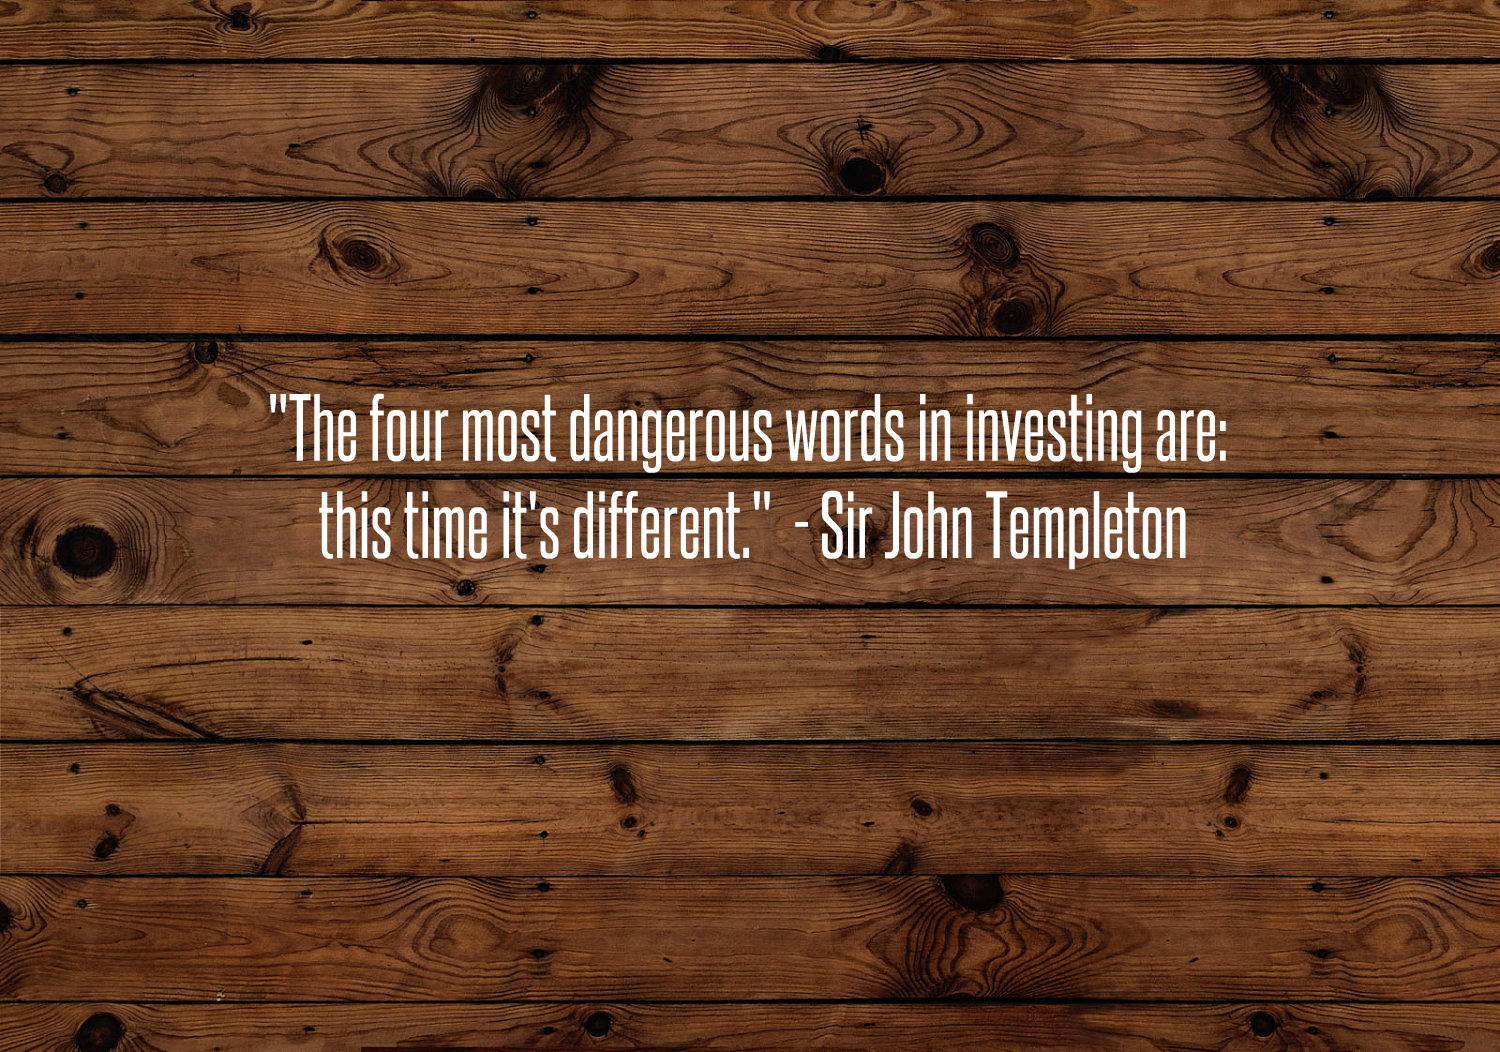 Quote - Sir John Templeton.jpg